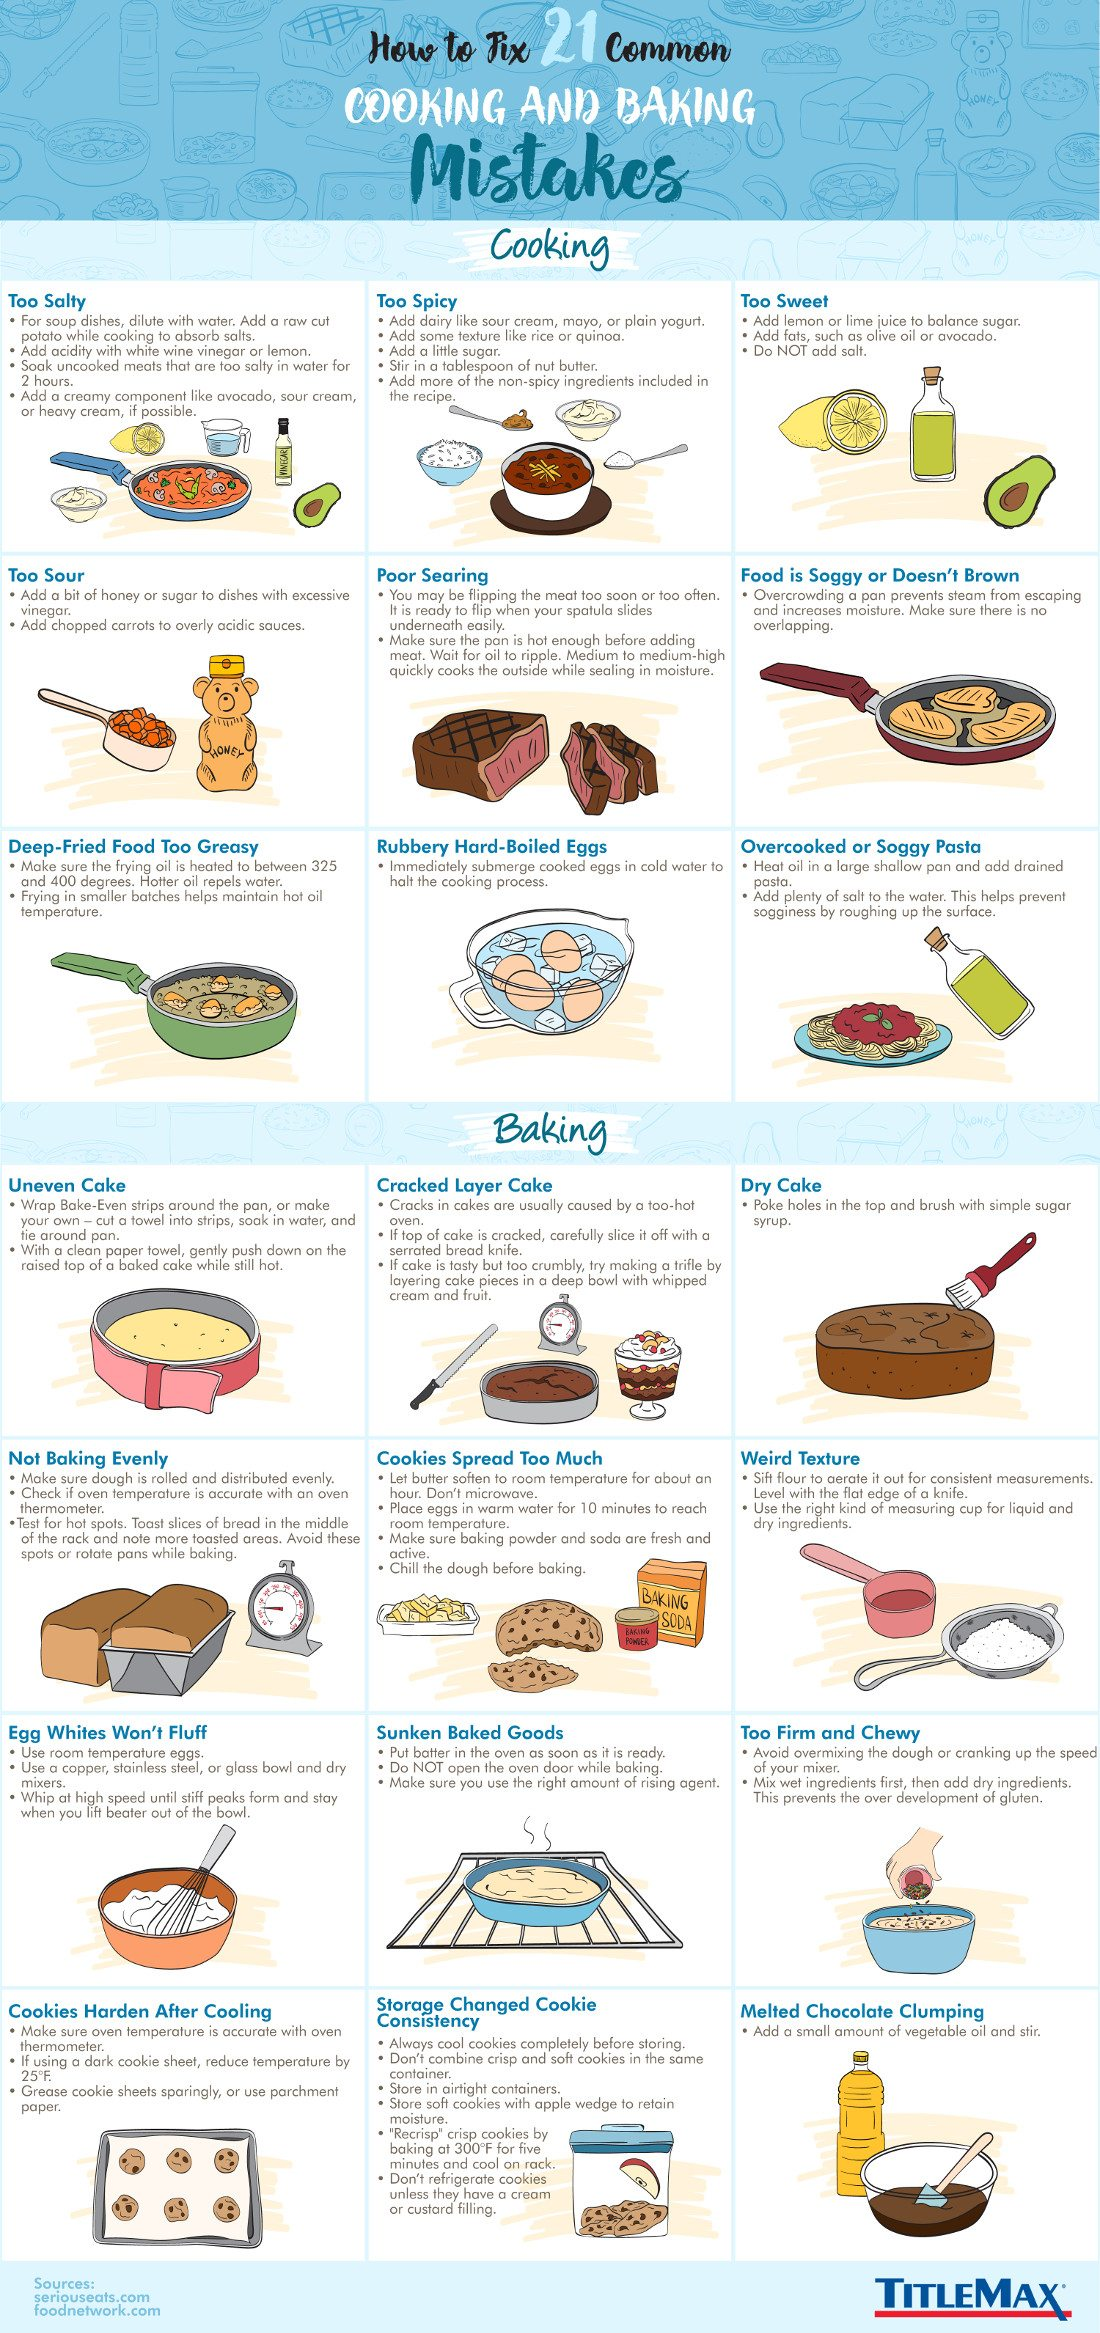 21 Common Cooking and Baking Mistakes – 21 Great Solutions! - Infographic